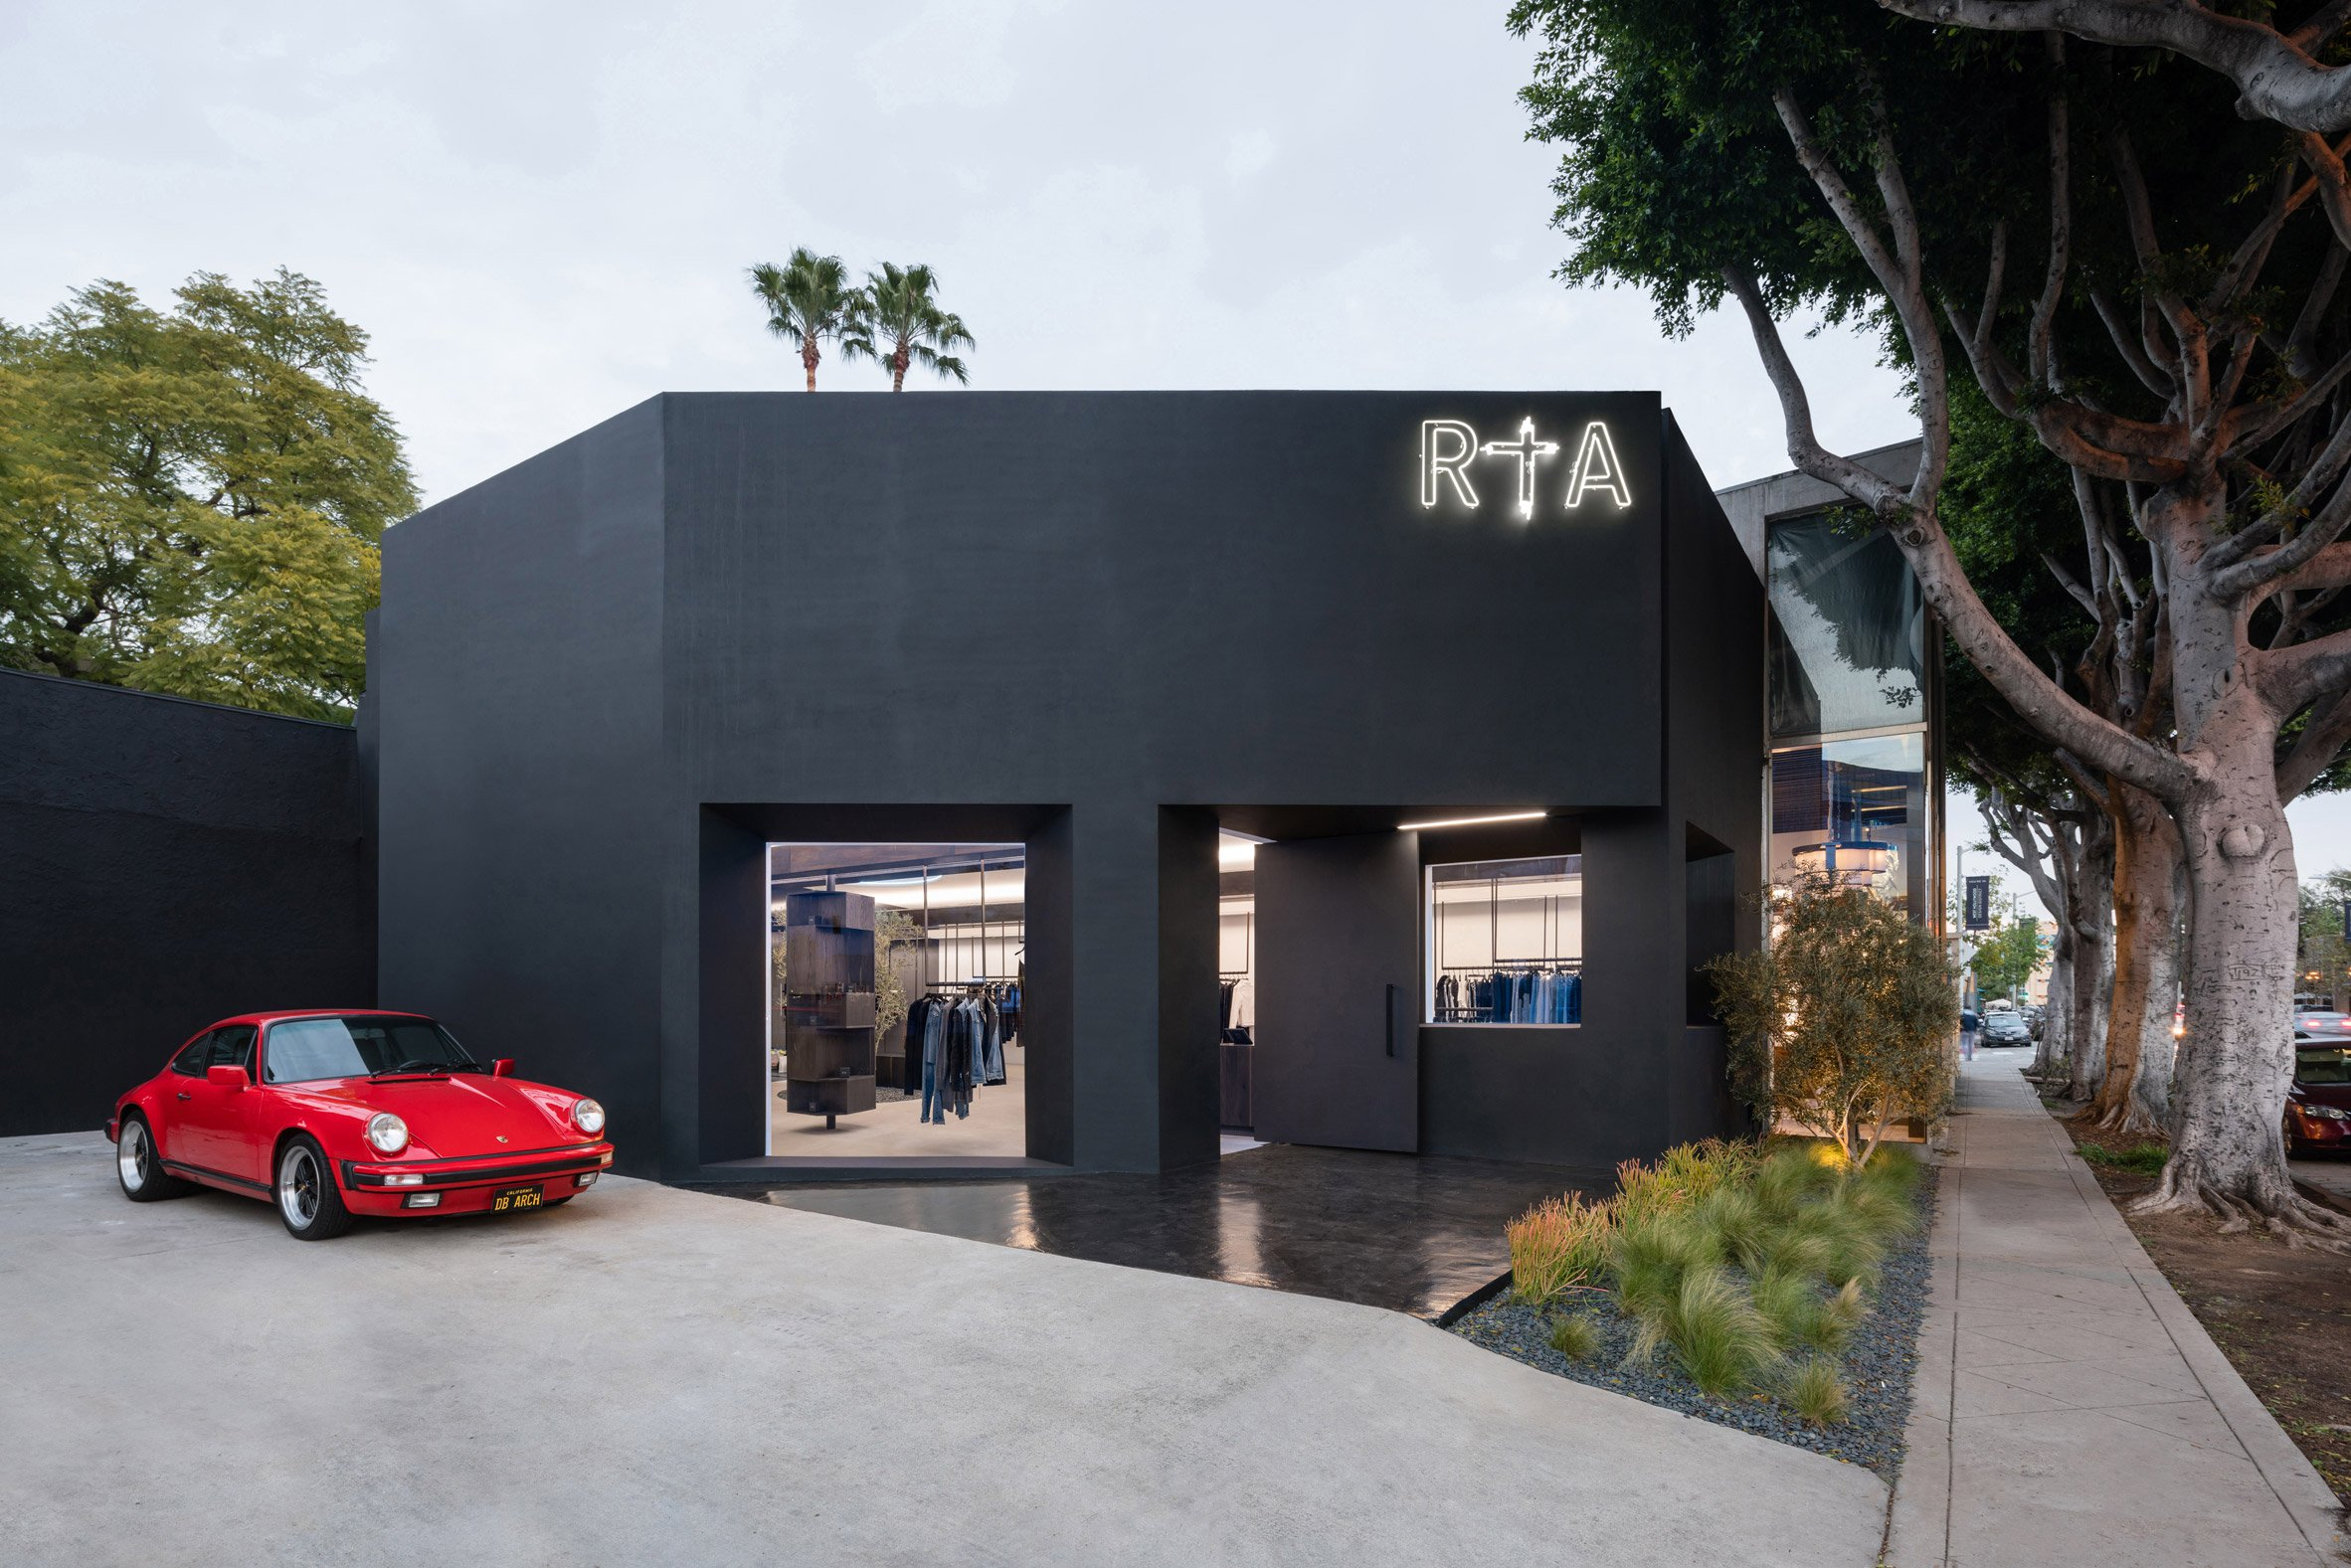 road-to-awe-flagship-dan-brunn-architecture-los-angeles-usa_dezeen_2364_col_8.jpg